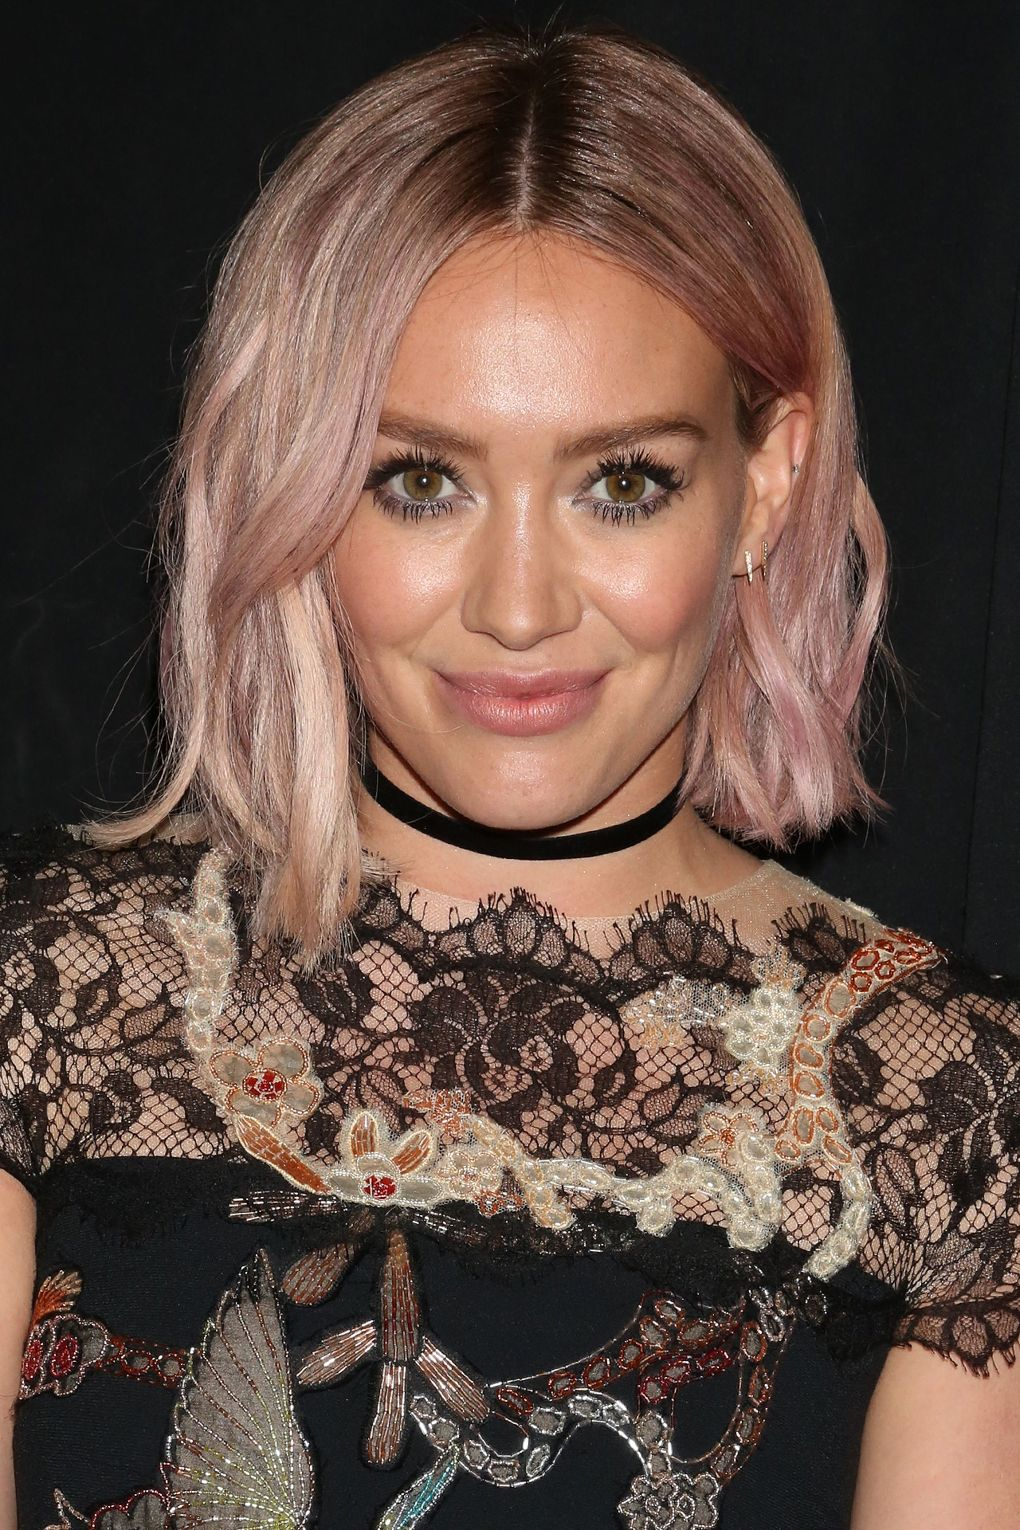 Hilary-Duff-02Jan18-rexfeatures_5586645af